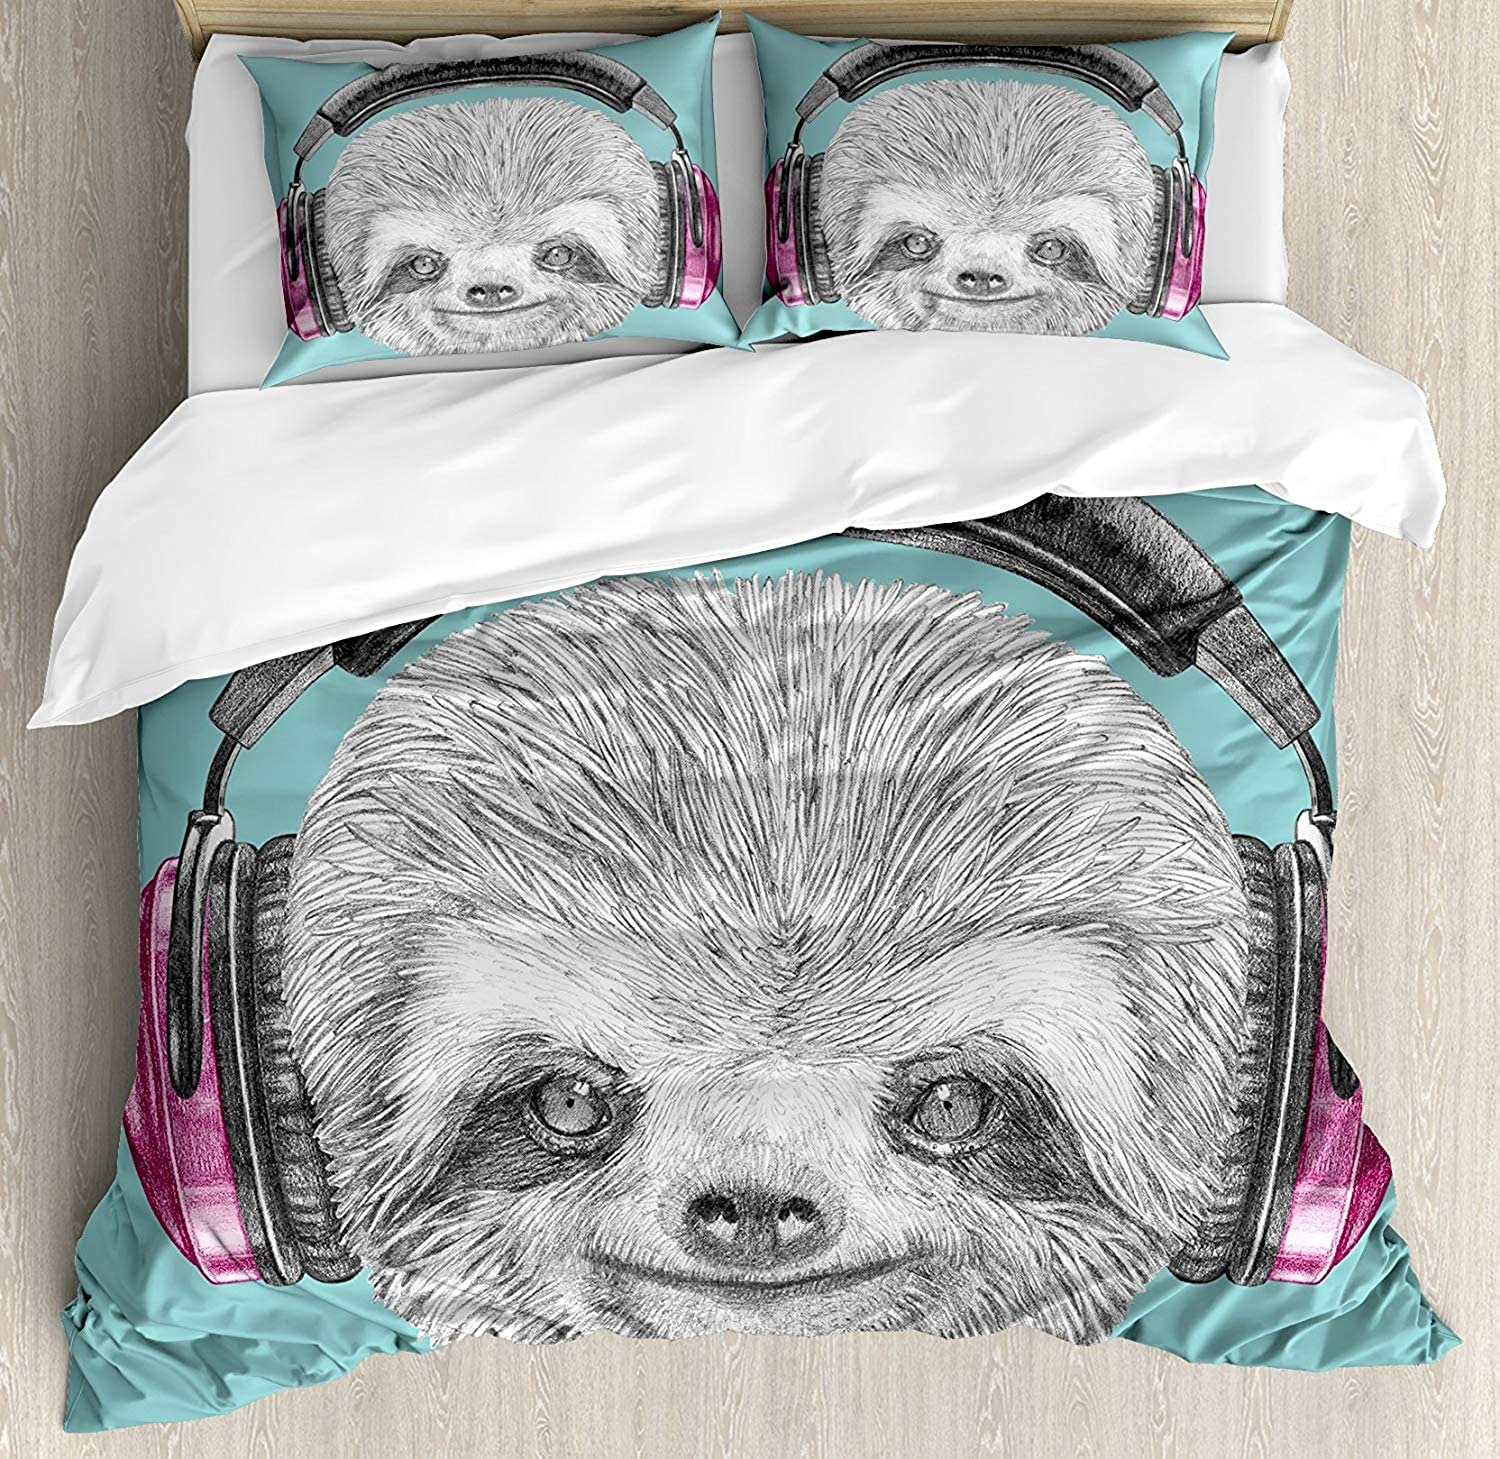 OneHoney Sloth Ultra Soft 4 Pieces Bedding Sets, DJ Sloth Portrait with Headphones Funny Modern Character Cool Cute Smiling, Luxury Decorative Bedspread Duvet Cover Set, Teal Grey Fuchsia